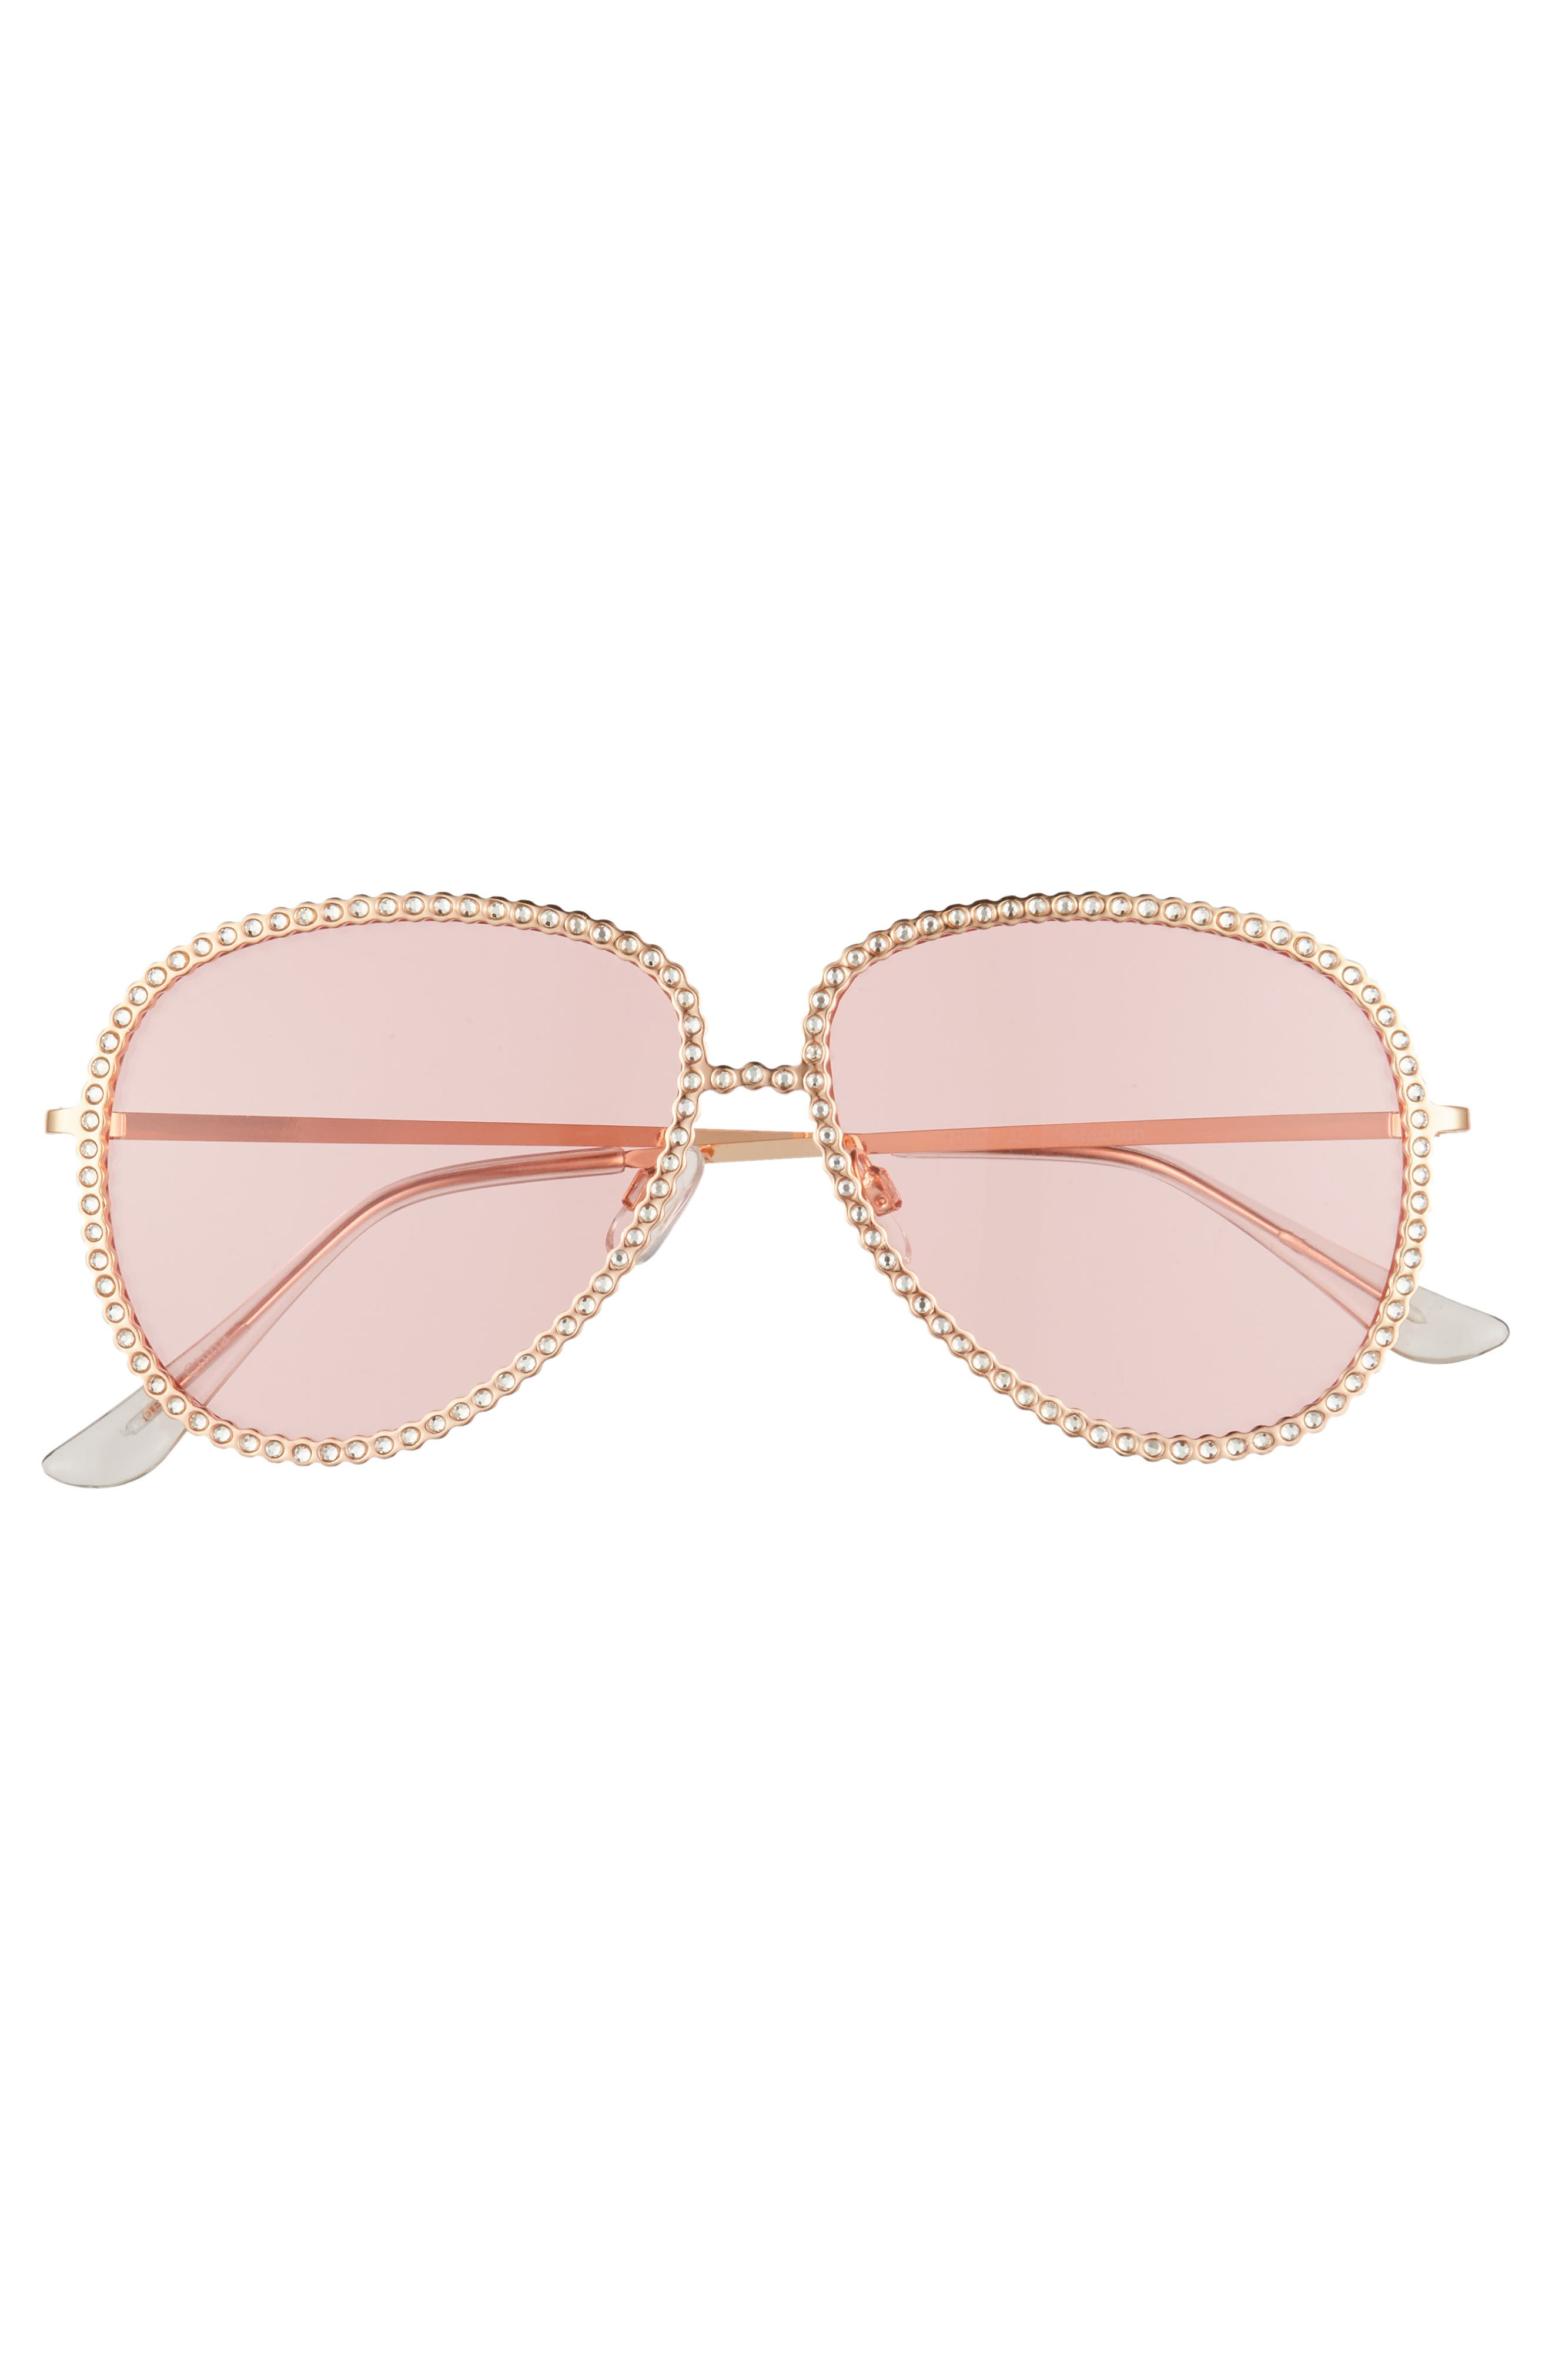 58mm Crystal Aviator Sunglasses,                             Alternate thumbnail 3, color,                             Rose Gold/ Pink